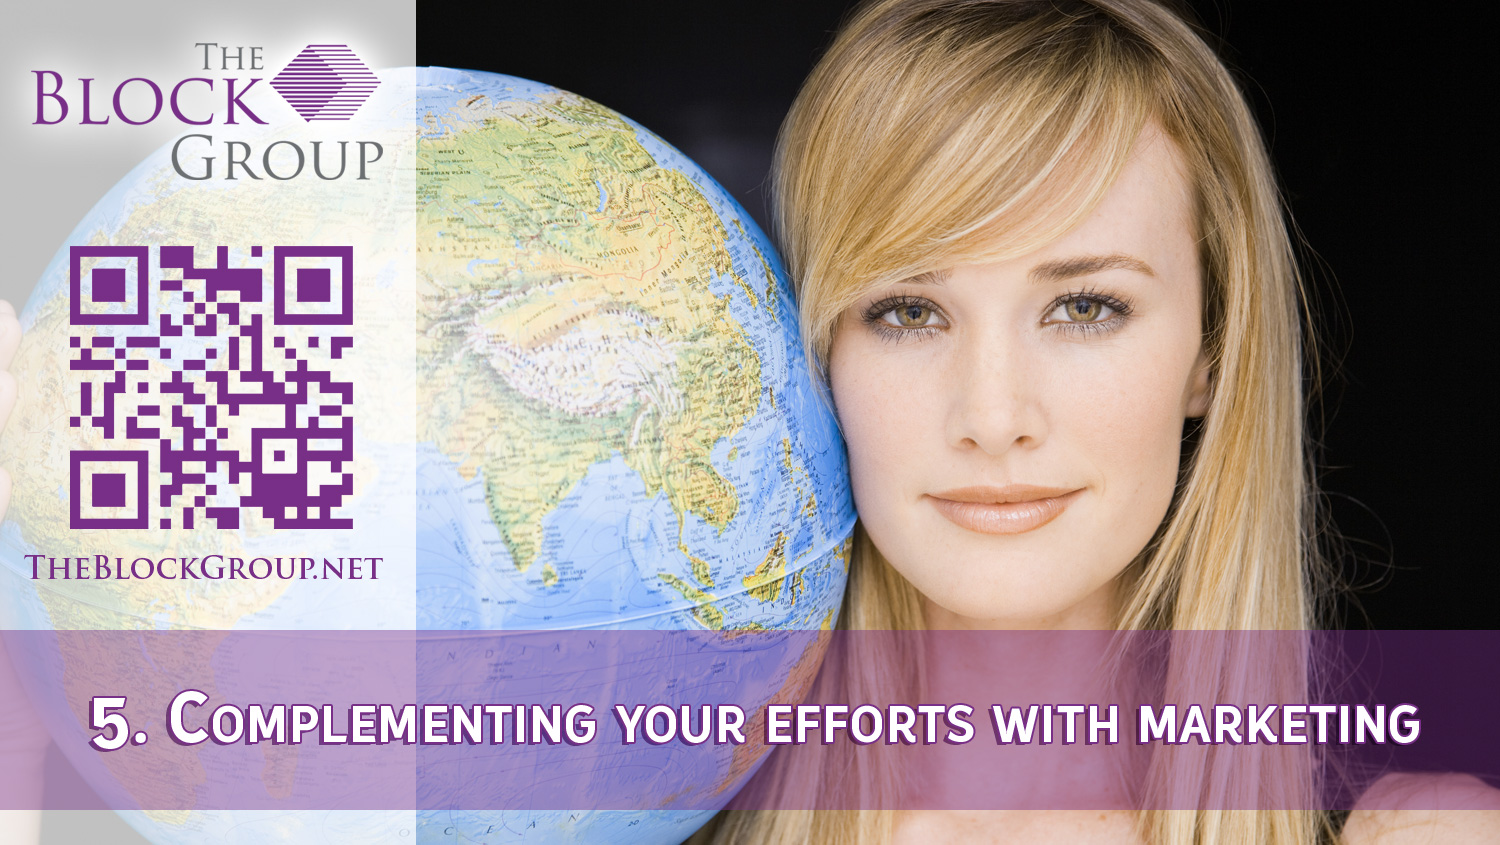 005.-Complementing-your-sales-efforts-with-marketing